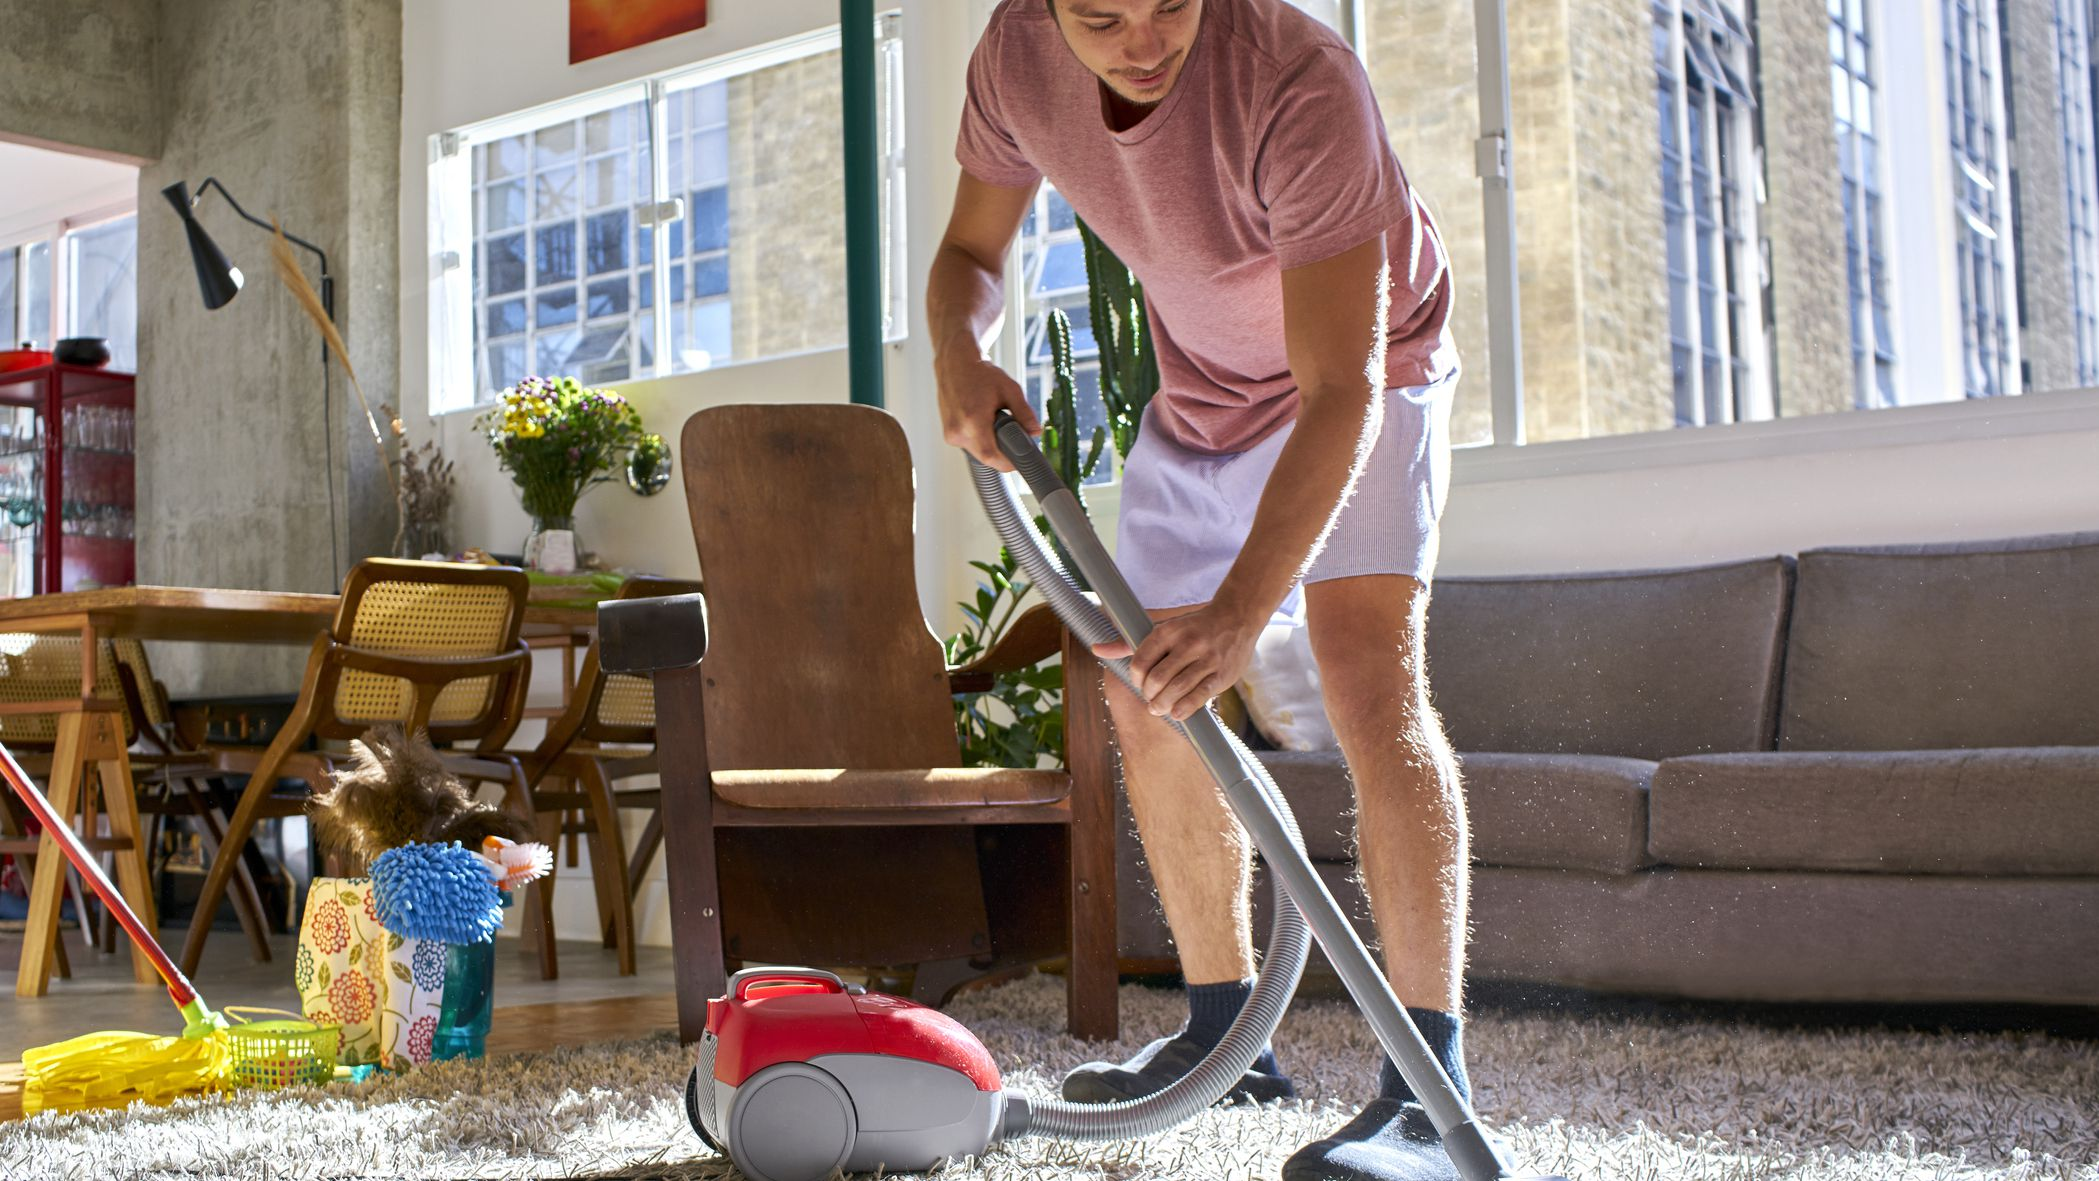 The 8 Best Carpet Cleaning Companies of 2020